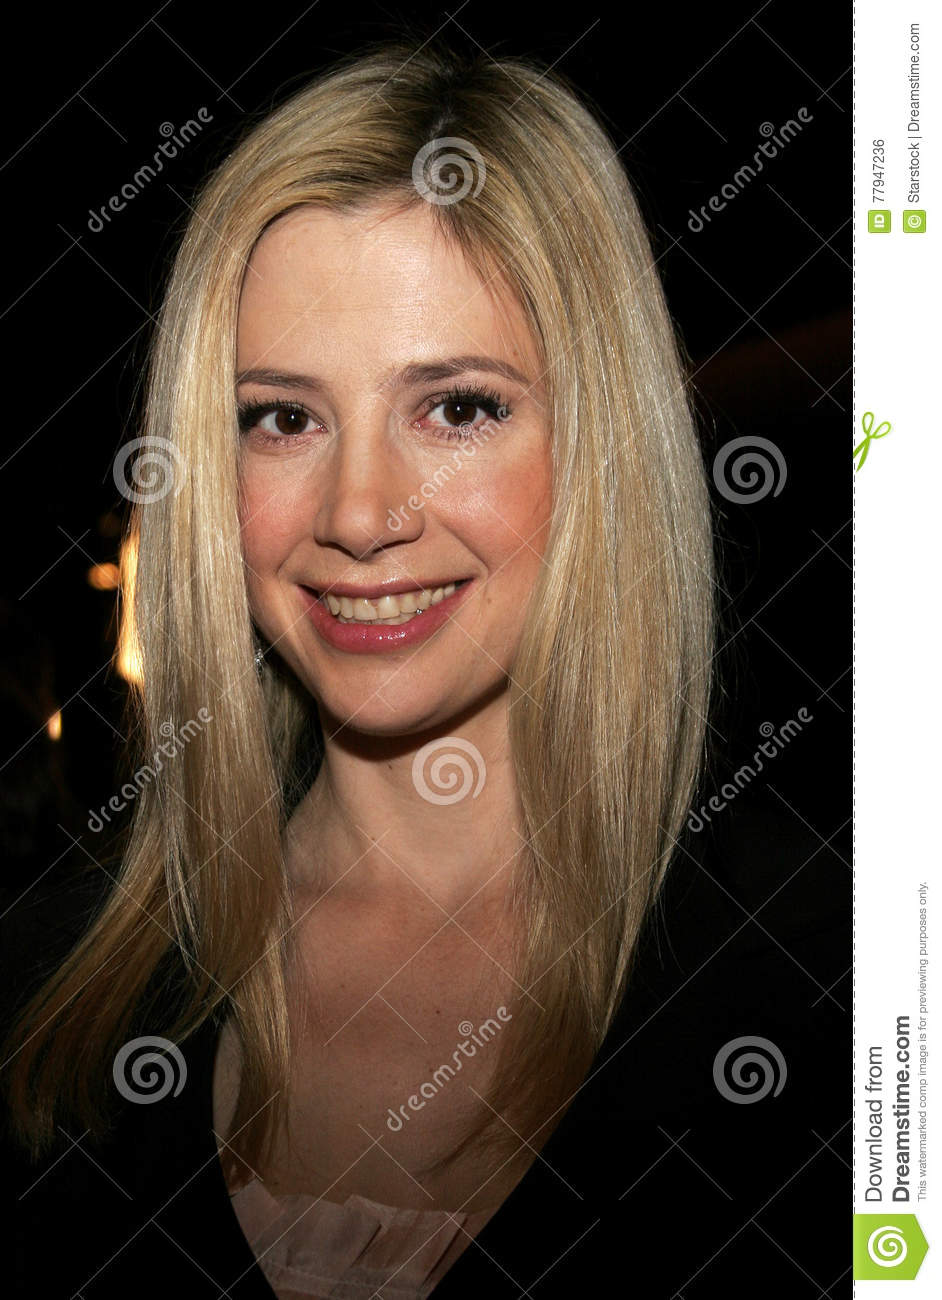 Oscar Winner Mira Sorvino Attends The 78th Annual Academy Awards Nominations Held At Of Motion Picture Arts And Sciences In Beverly Hills